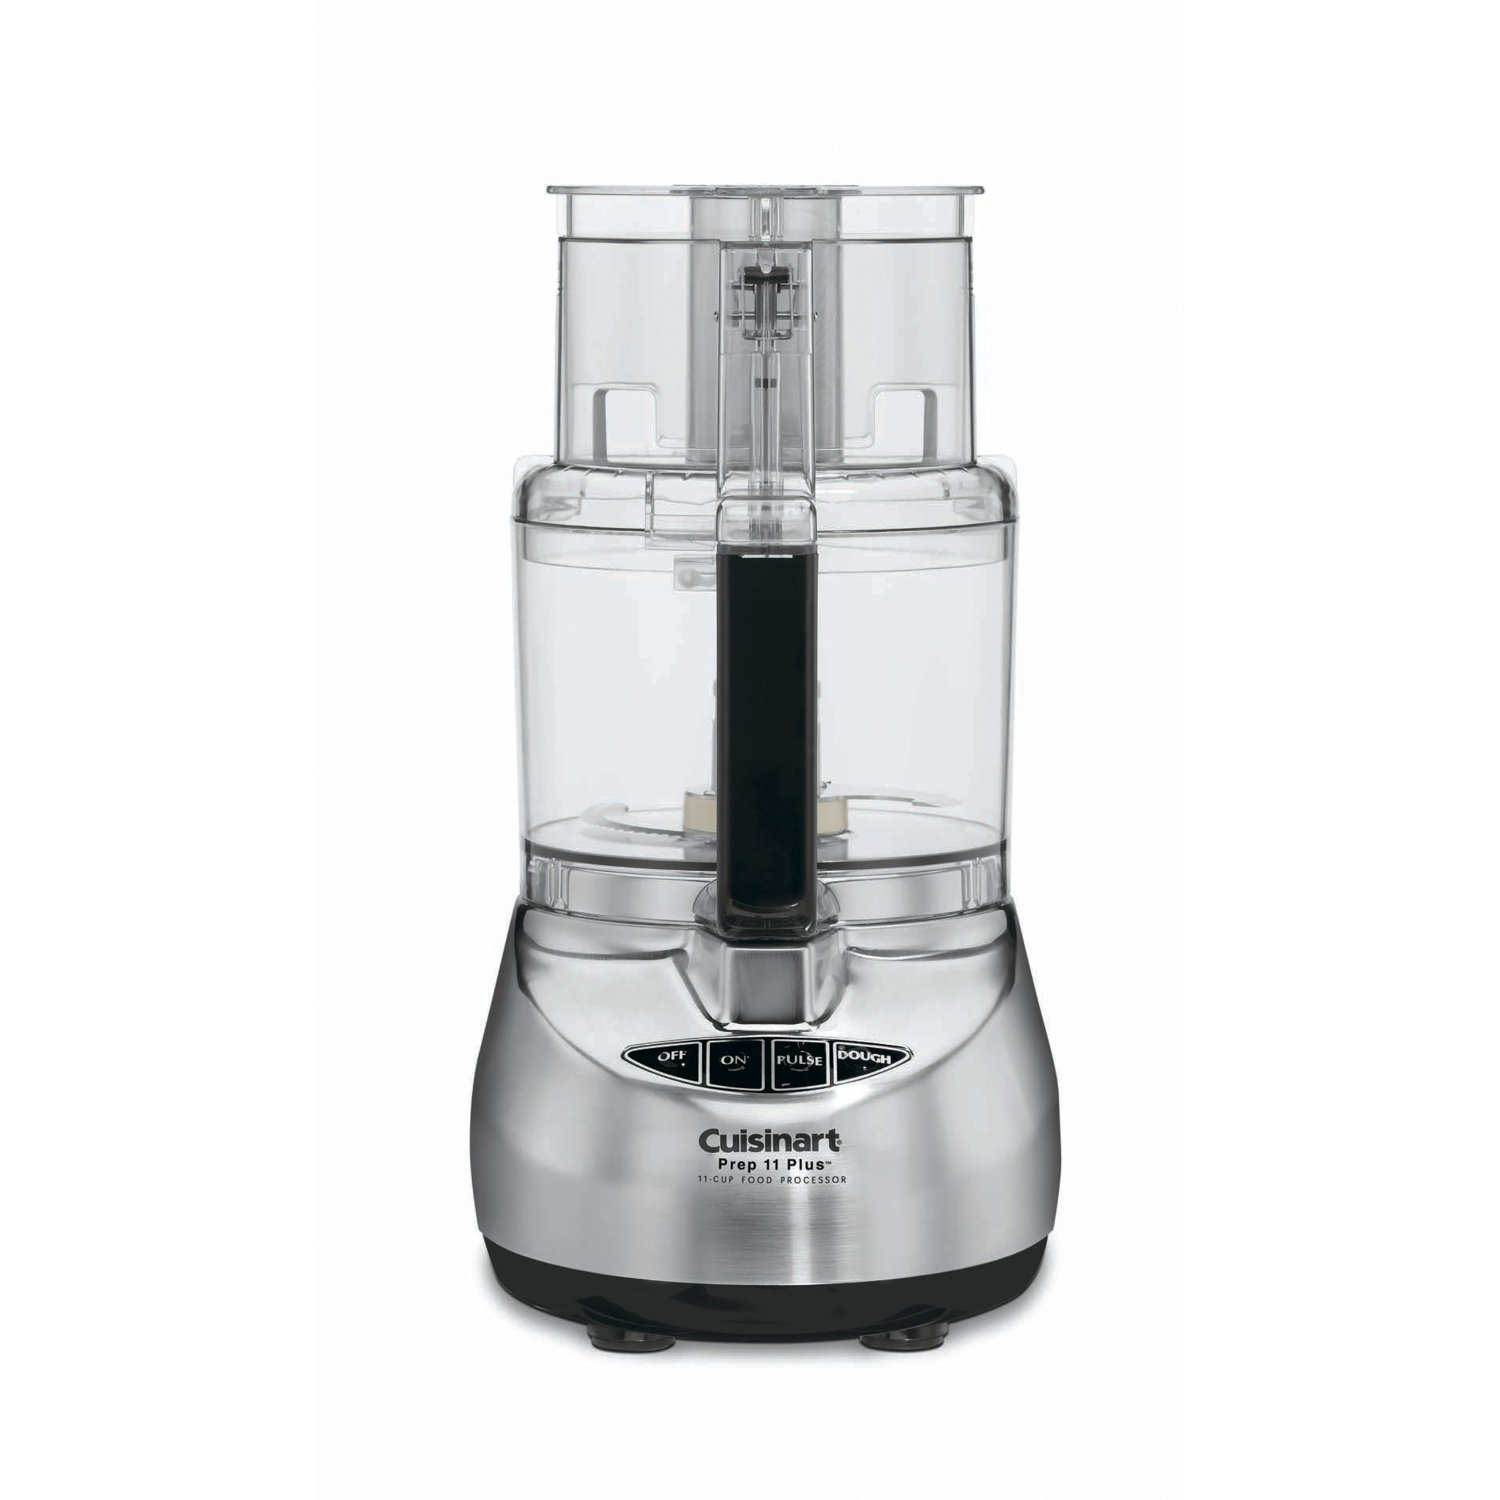 Cuisinart Food Processor Costco Budget Paleo Made Easy Chocolate Pecan Almond Nut Butter